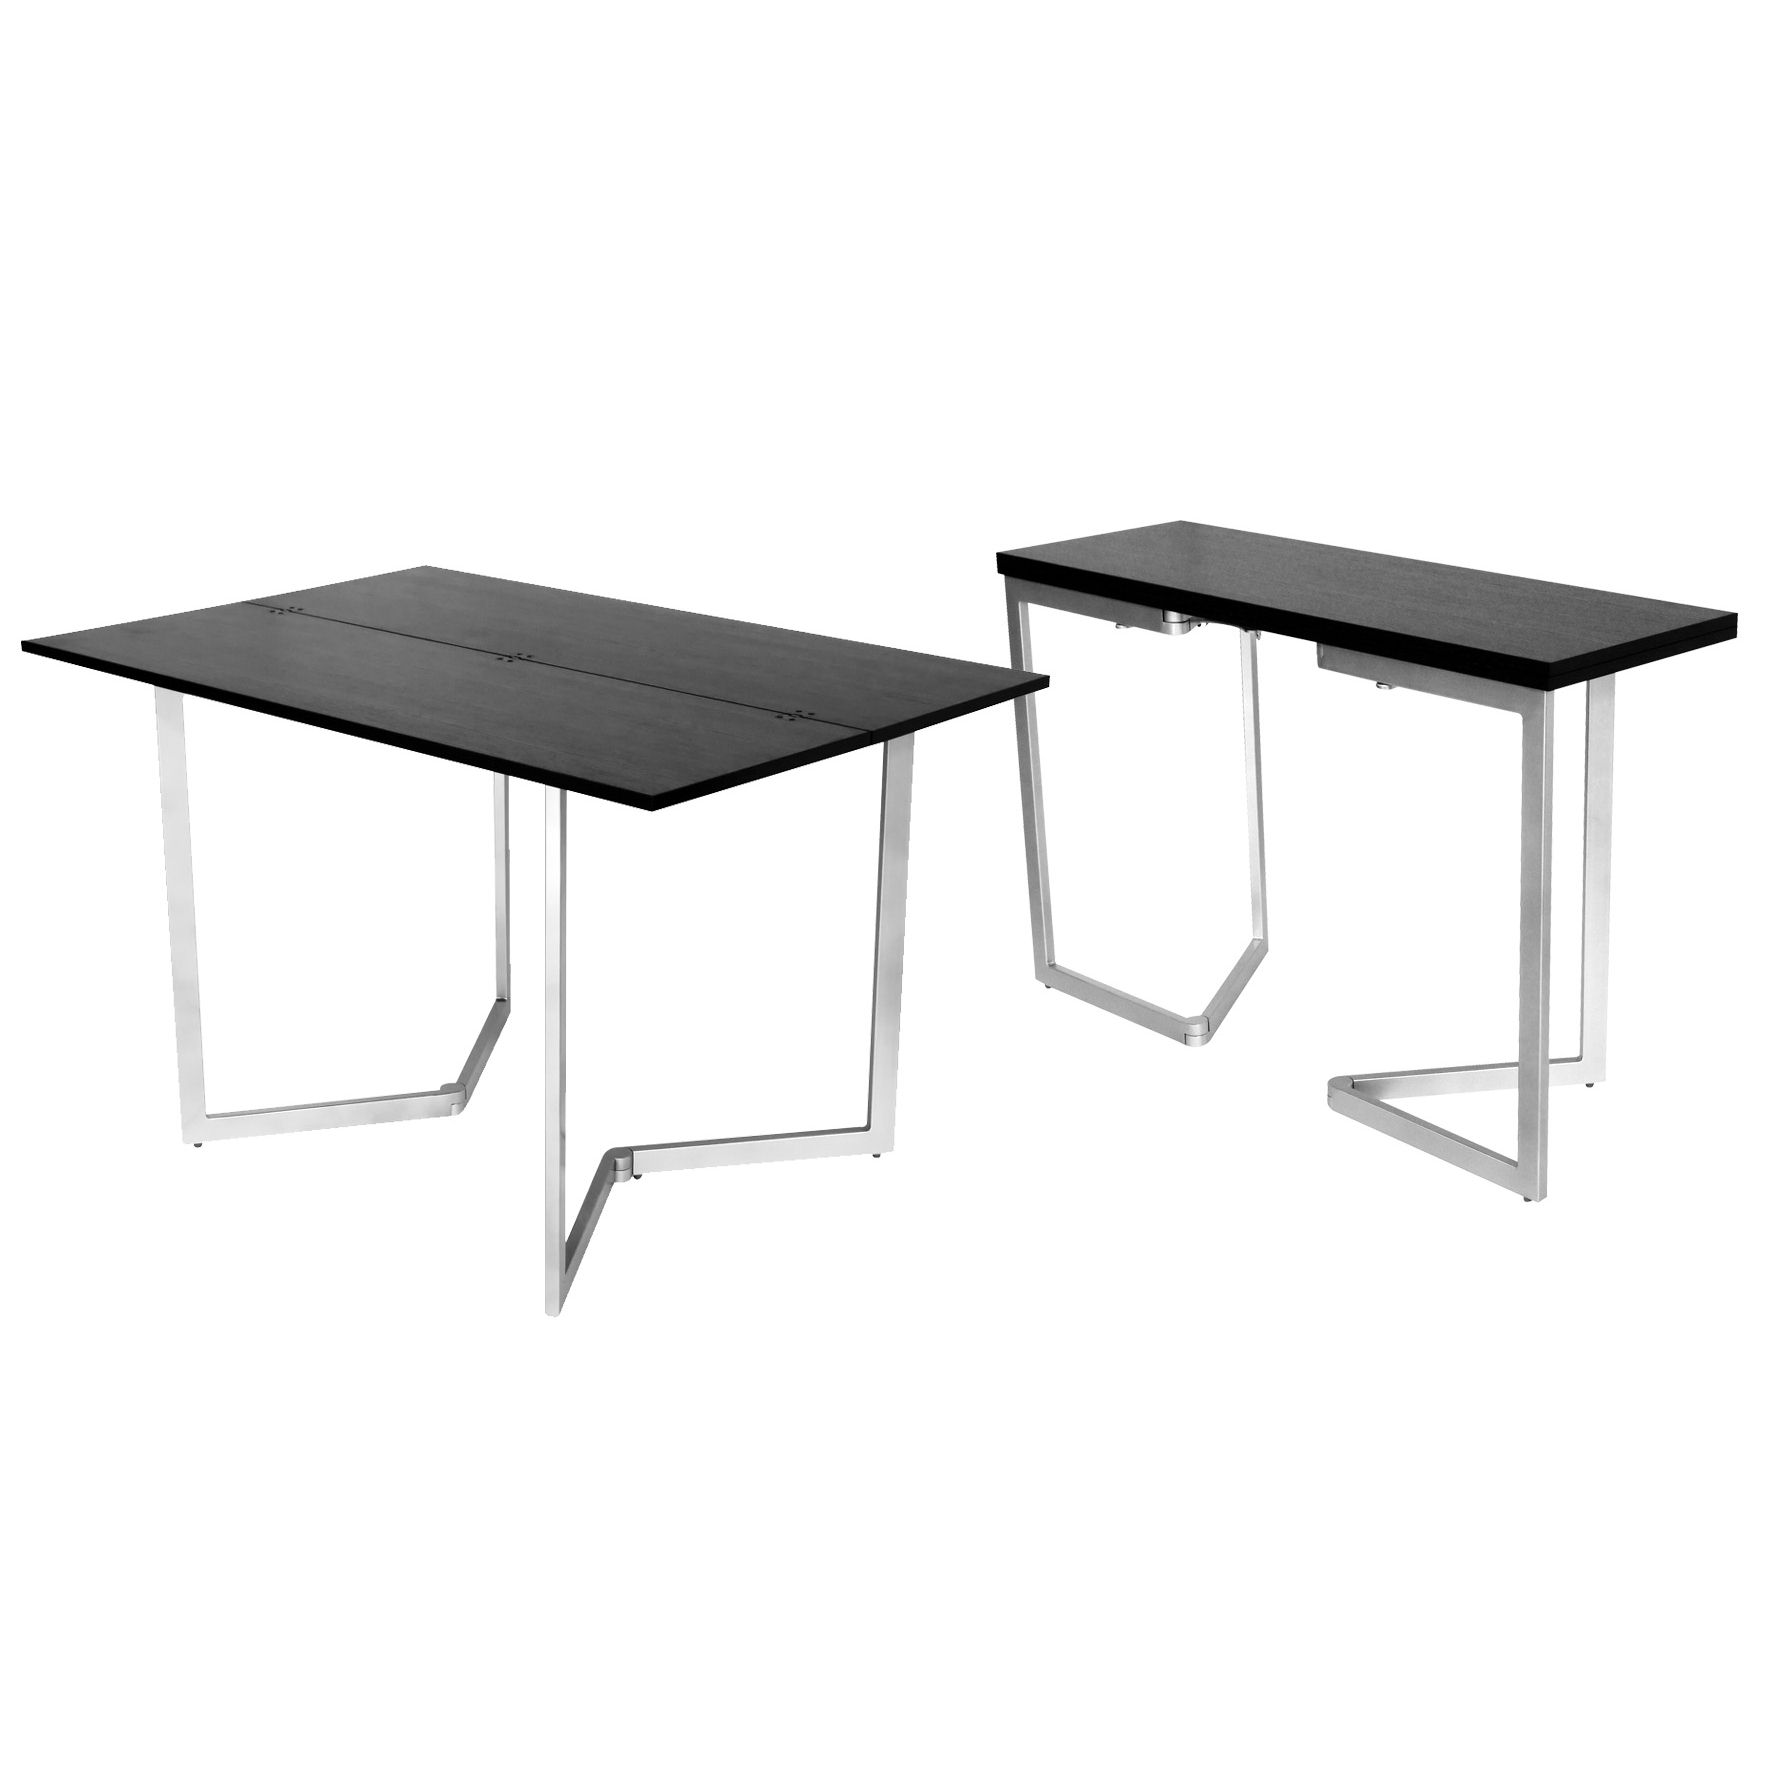 Deco in paris table console extensible wenge talia for Table extensible avec rallonges integrees